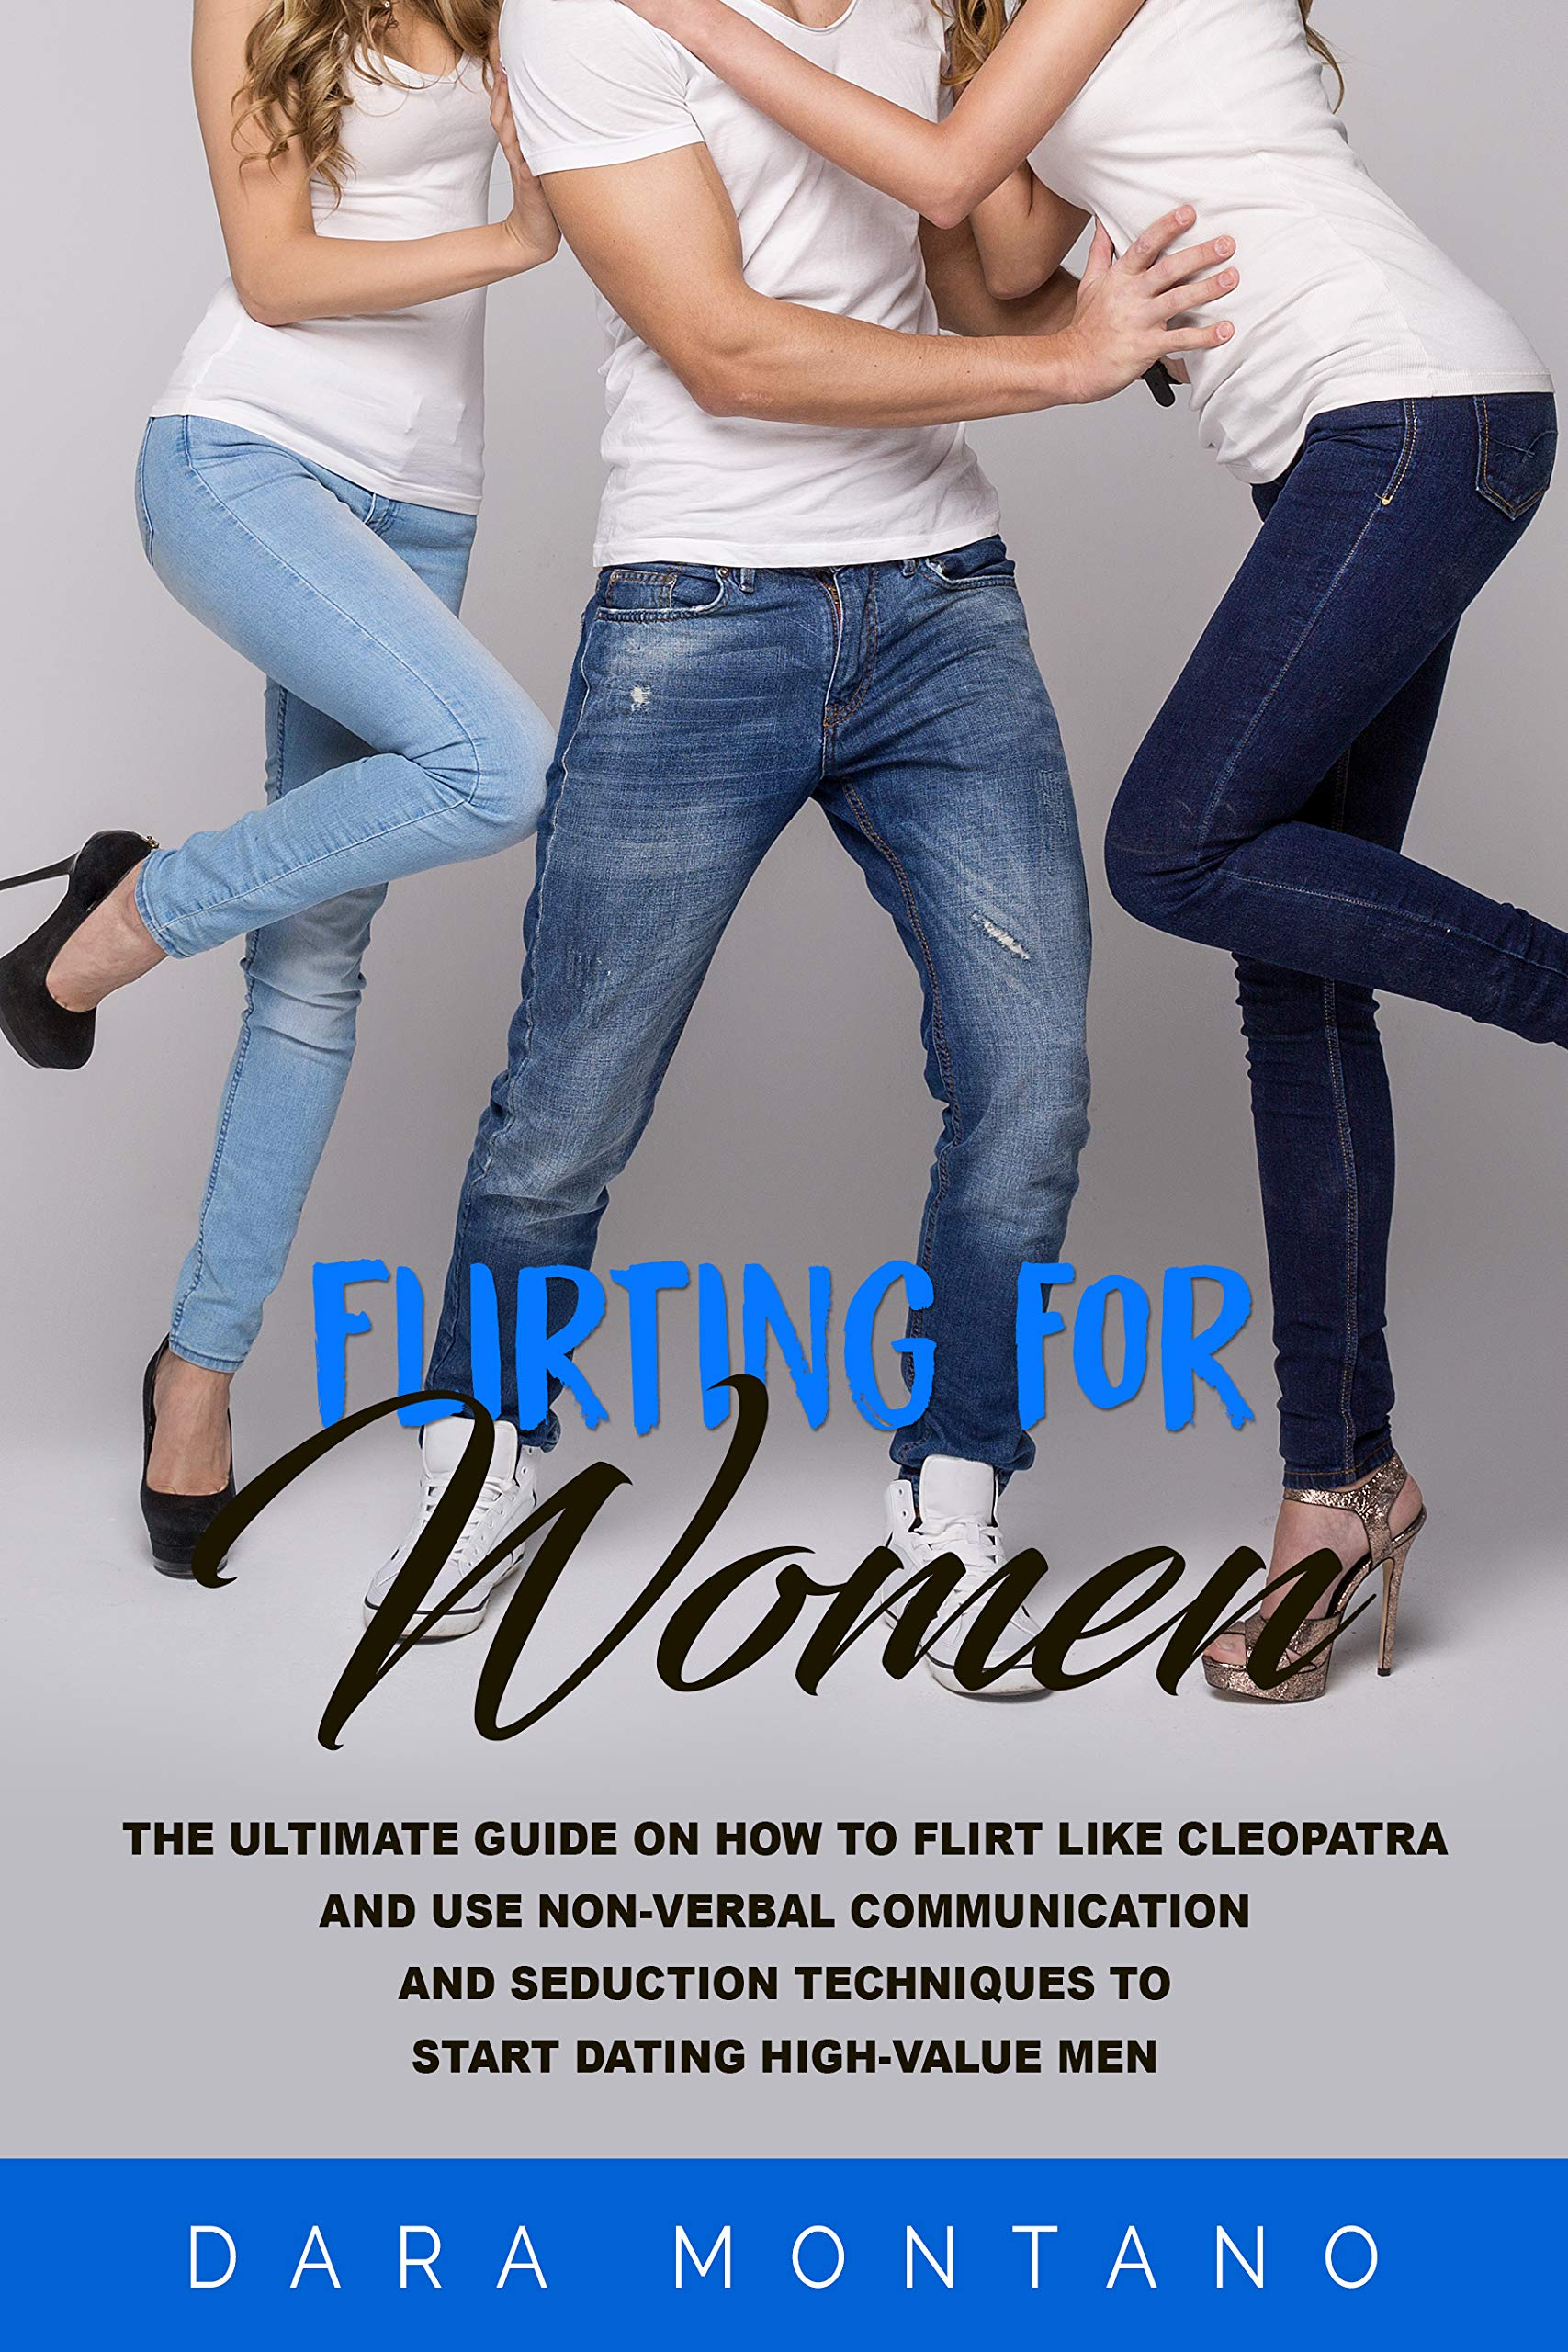 Flirting for Women: The Ultimate Guide on How to Flirt Like Cleopatra and Use Non-Verbal Communication and Seduction Techniques to Start Dating High-Value Men